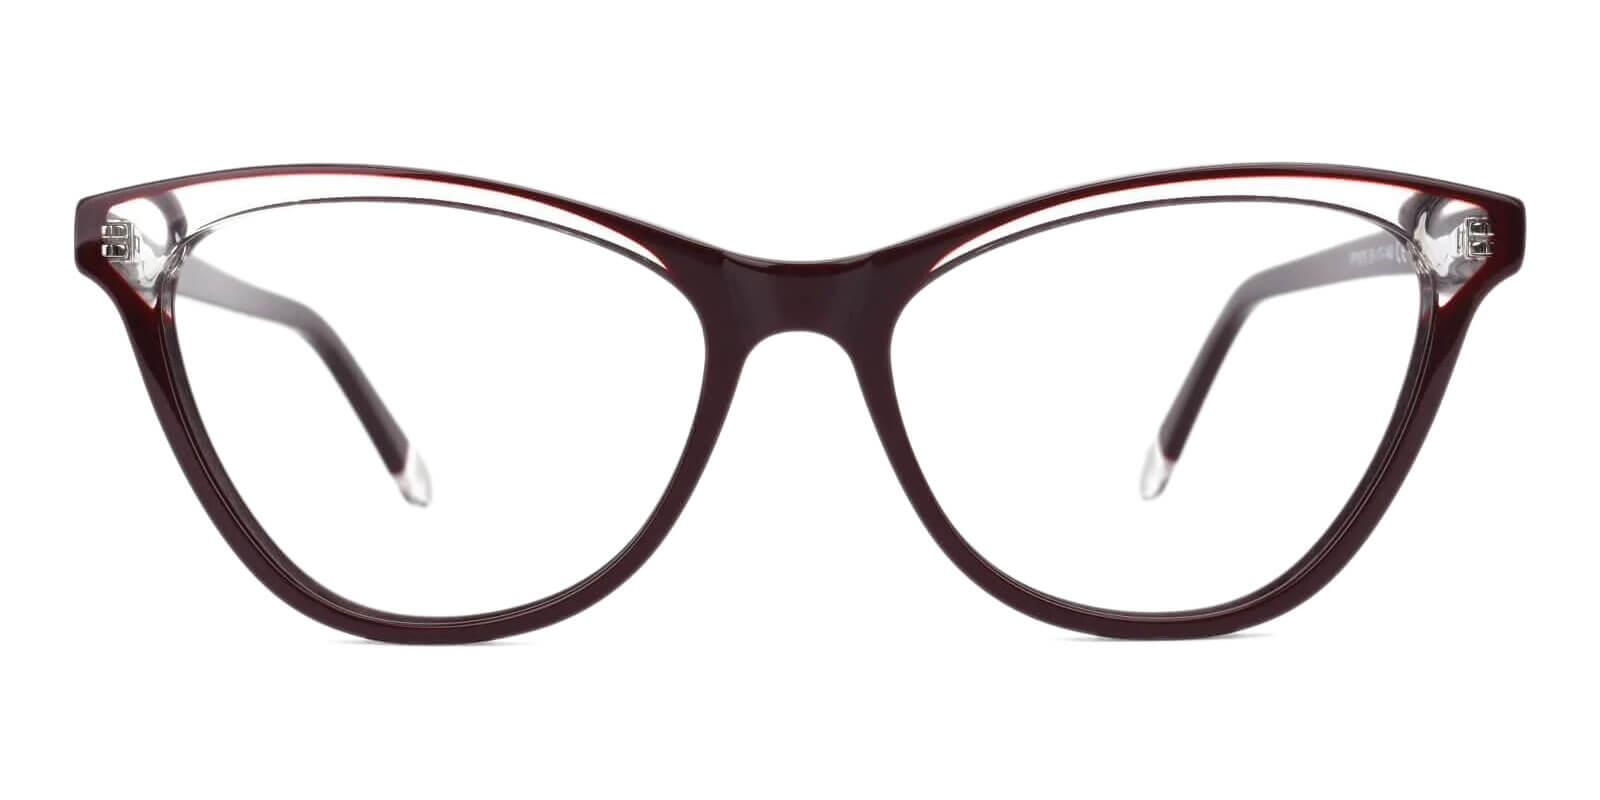 Luznic Brown Acetate Eyeglasses , UniversalBridgeFit Frames from ABBE Glasses